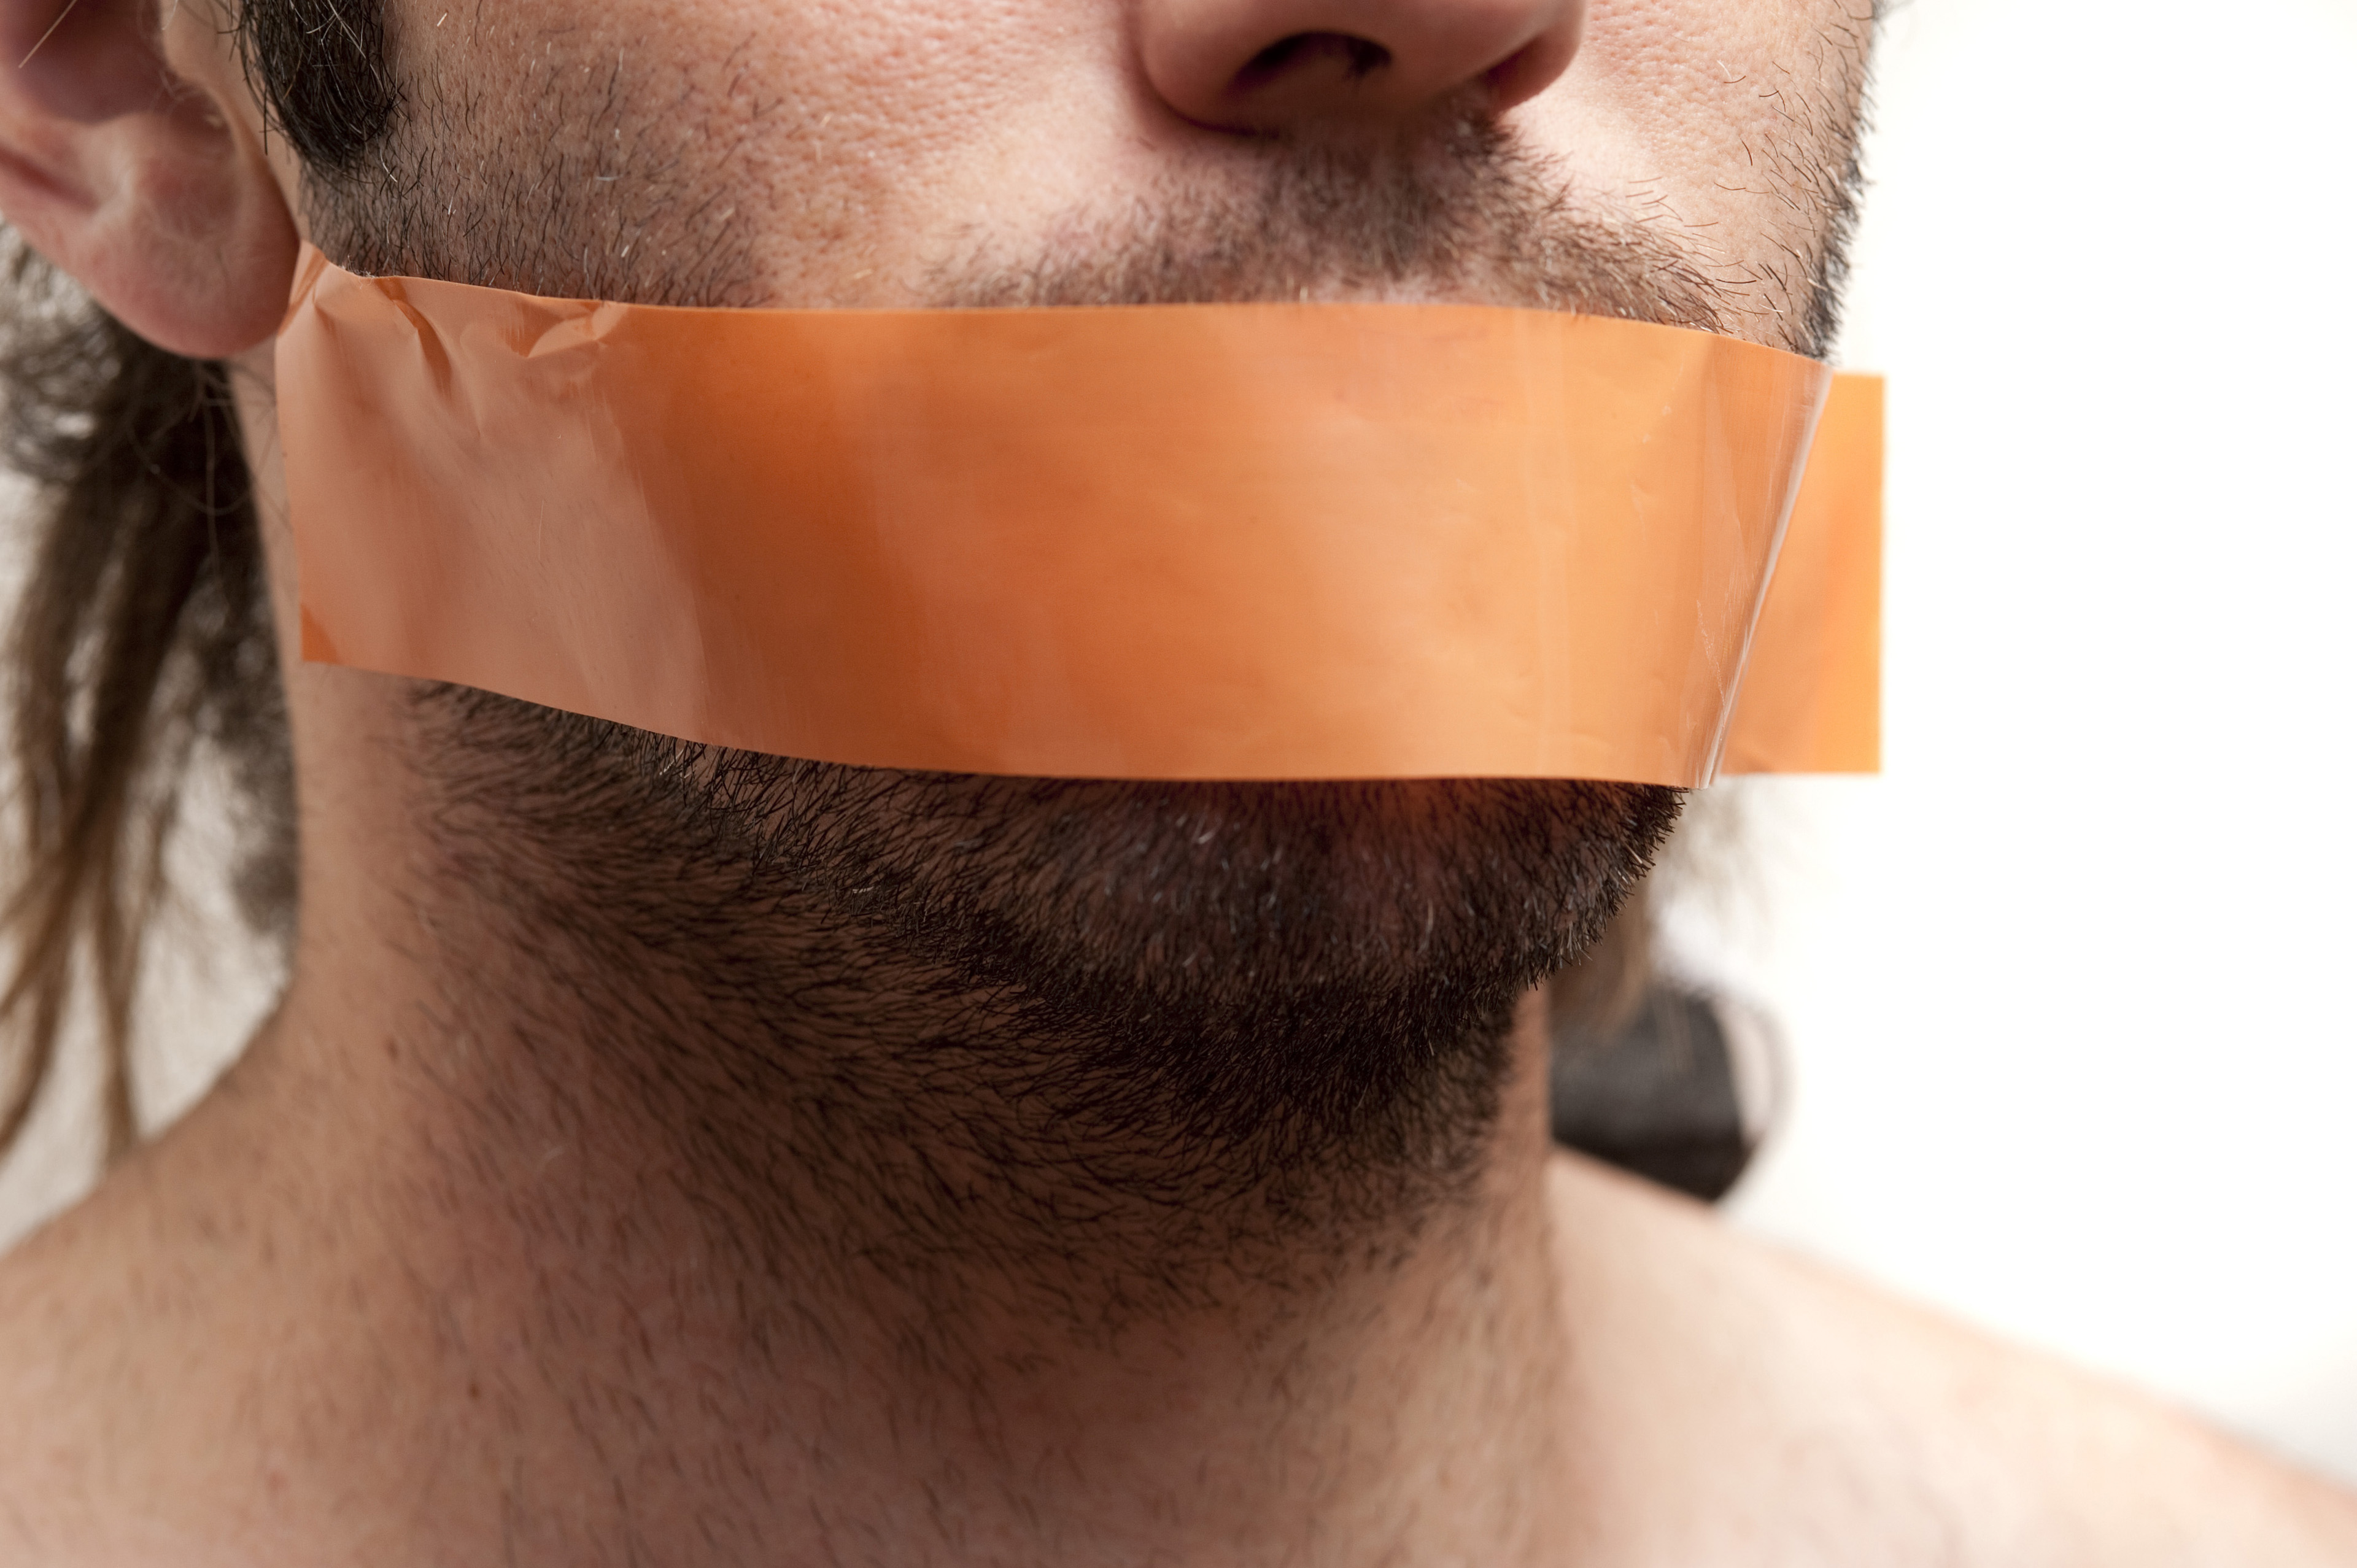 Close up Young Man with Beard and Mustache Putting a Brown Tape Over his Mouth for Silence Concept, Isolated on White Background.